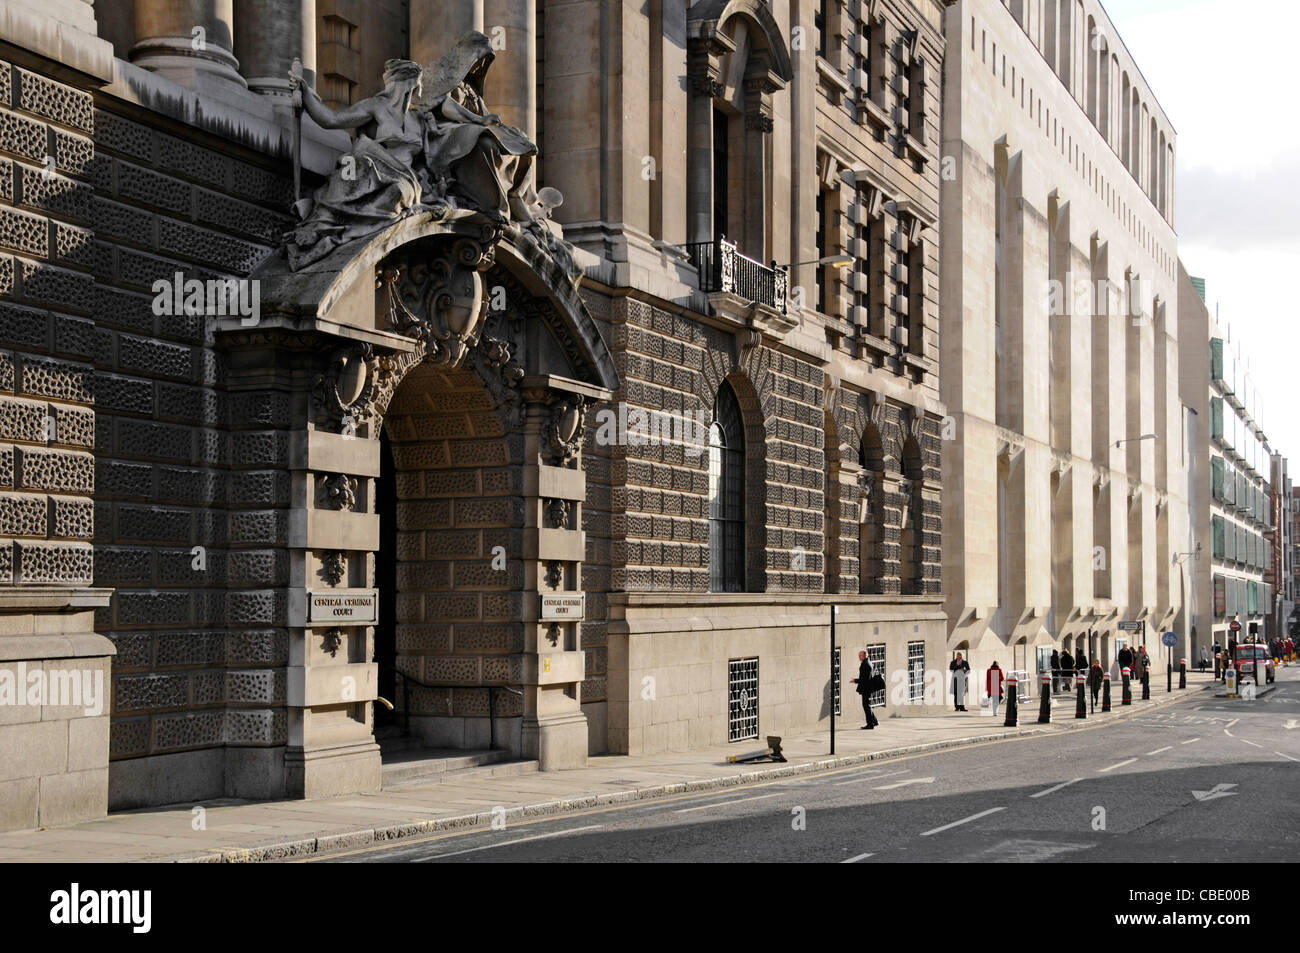 London street crown court the old bailey central criminal court of england wales with